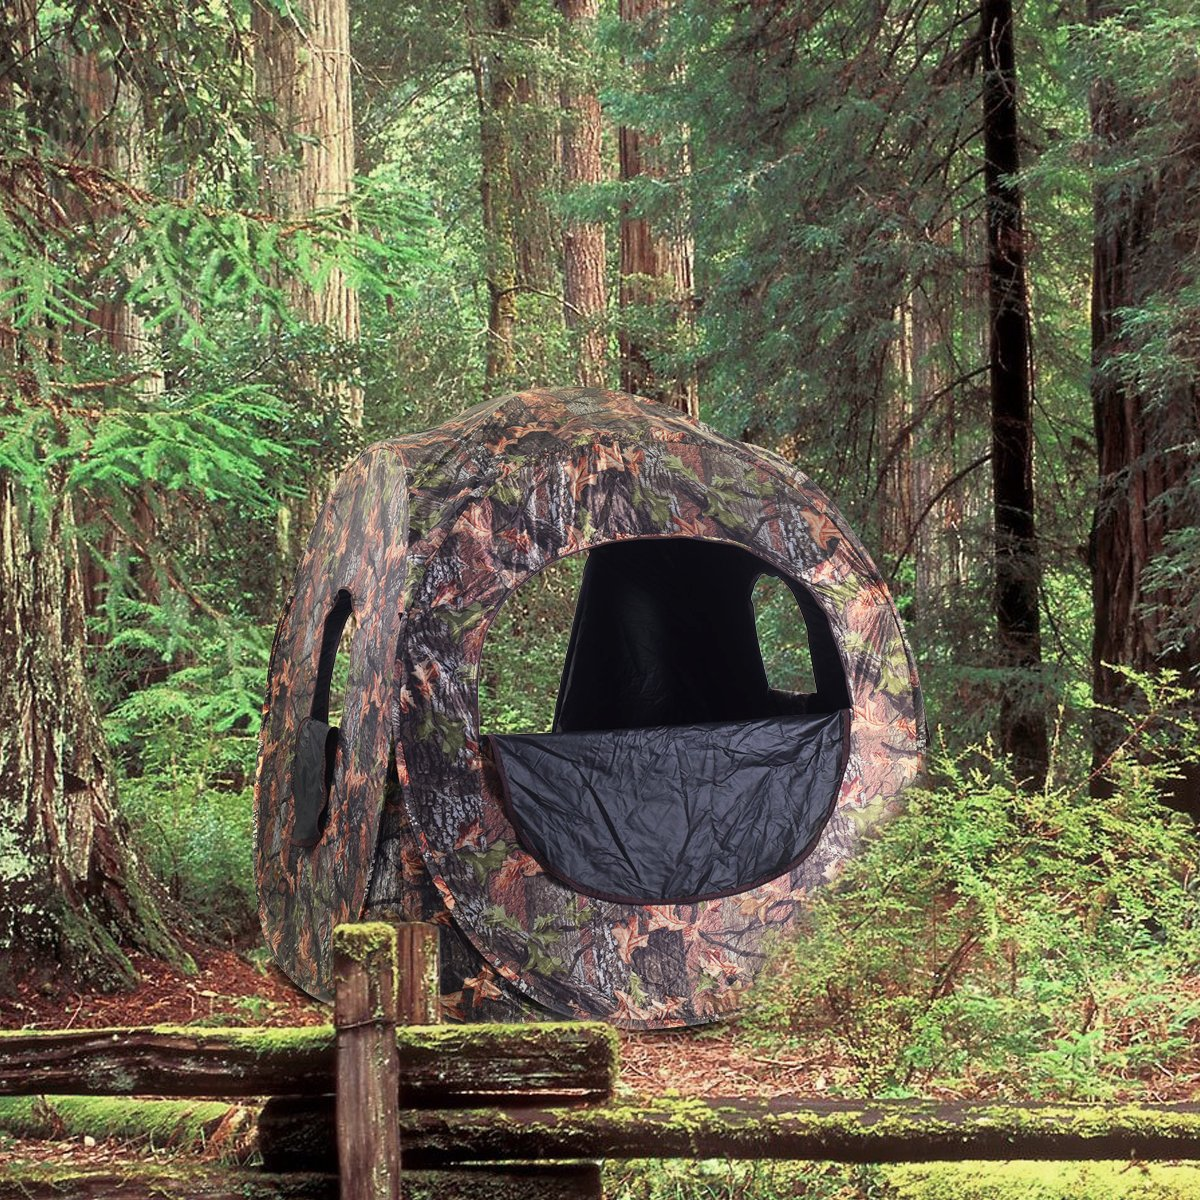 Tangkula Hunting Tent Portable Hunting Blind Pop Up Ground Blind 2-3 People Camo Waterproof with Backpack Hunting Enclosure by Tangkula (Image #2)